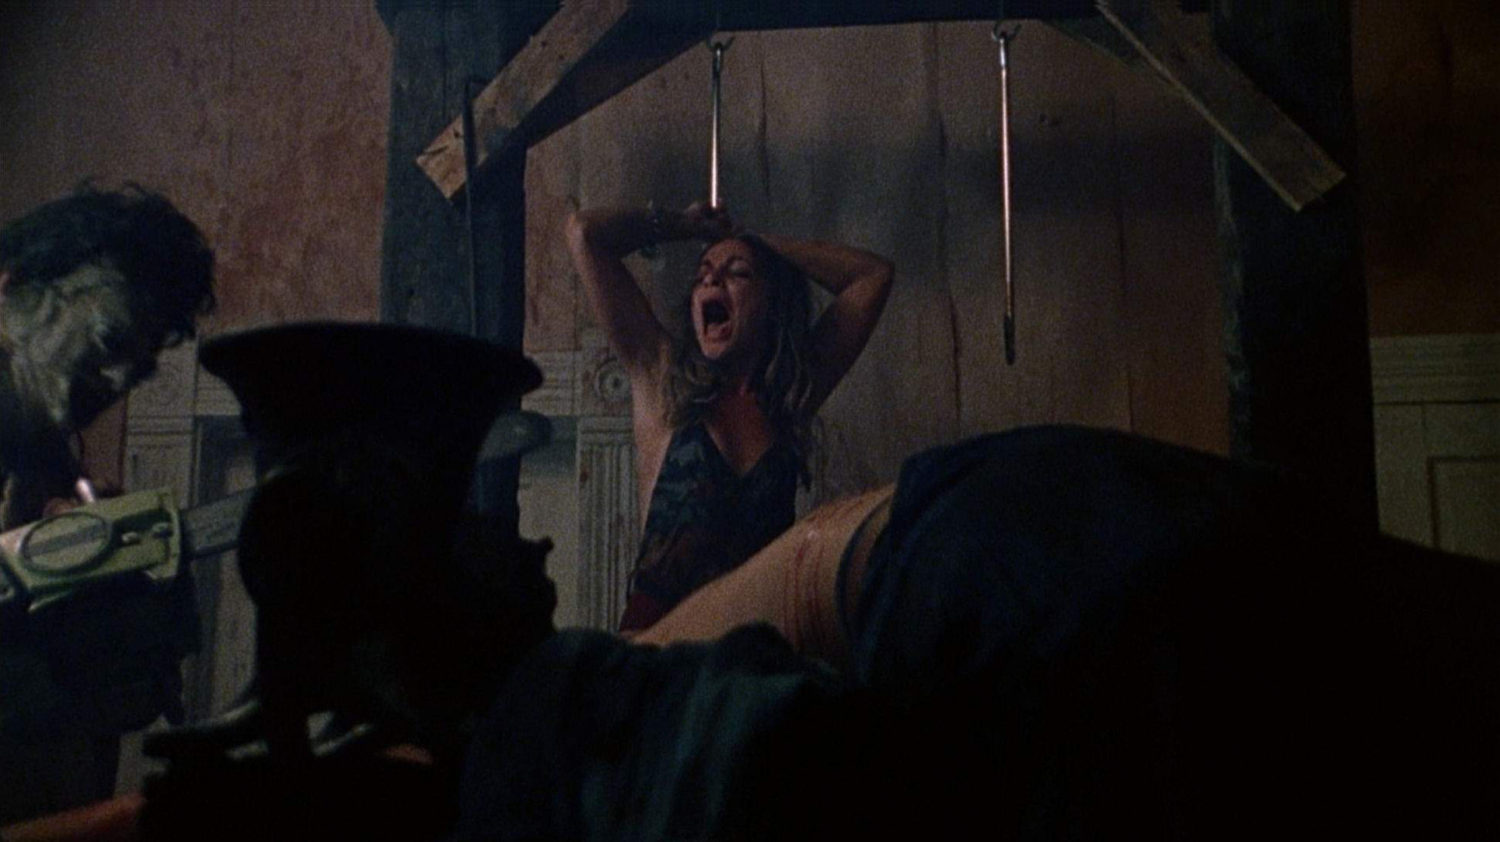 Leatherface news just keeps getting better. ModernHorrors.com takes a look at the latest happenings.